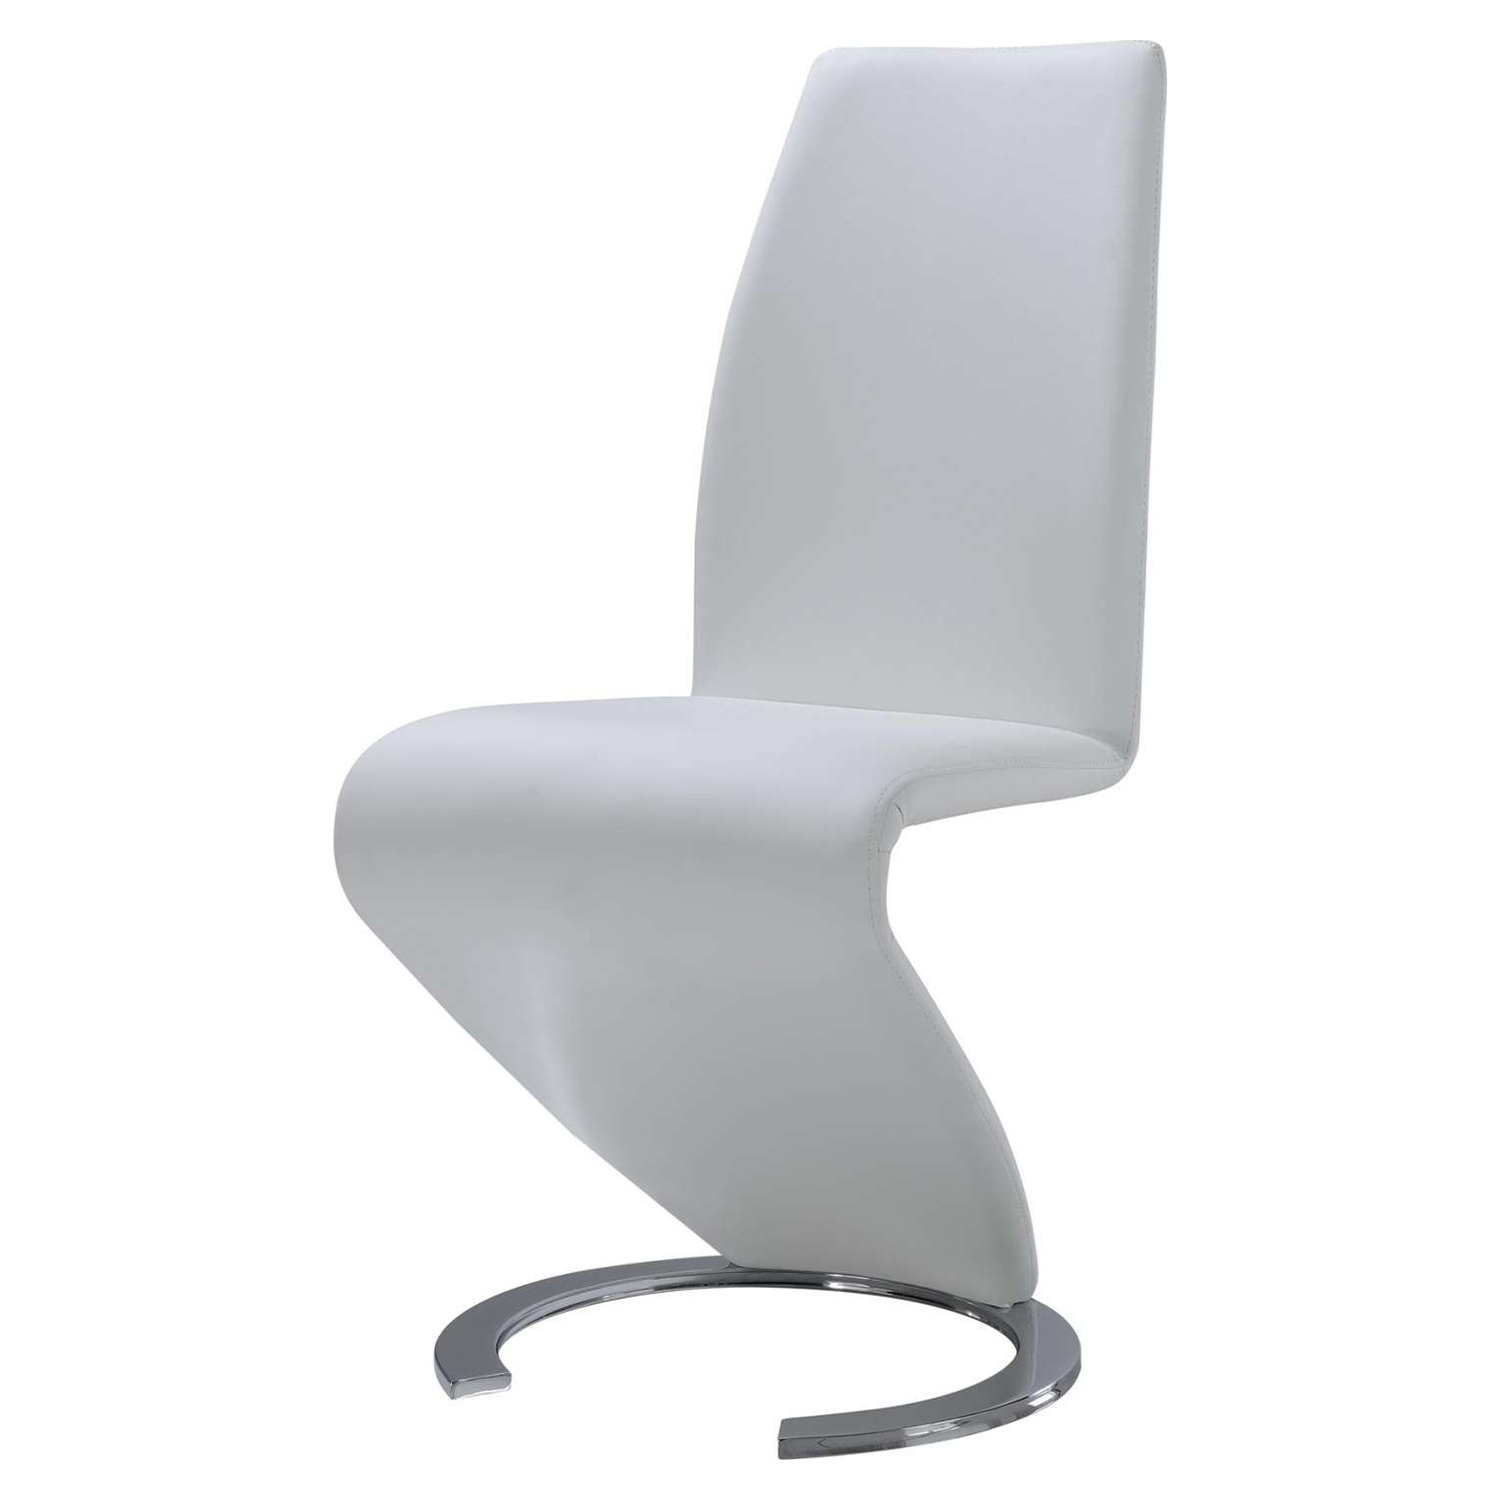 Skylar Dining Chair - White - GLO-D9002DC-WH-M